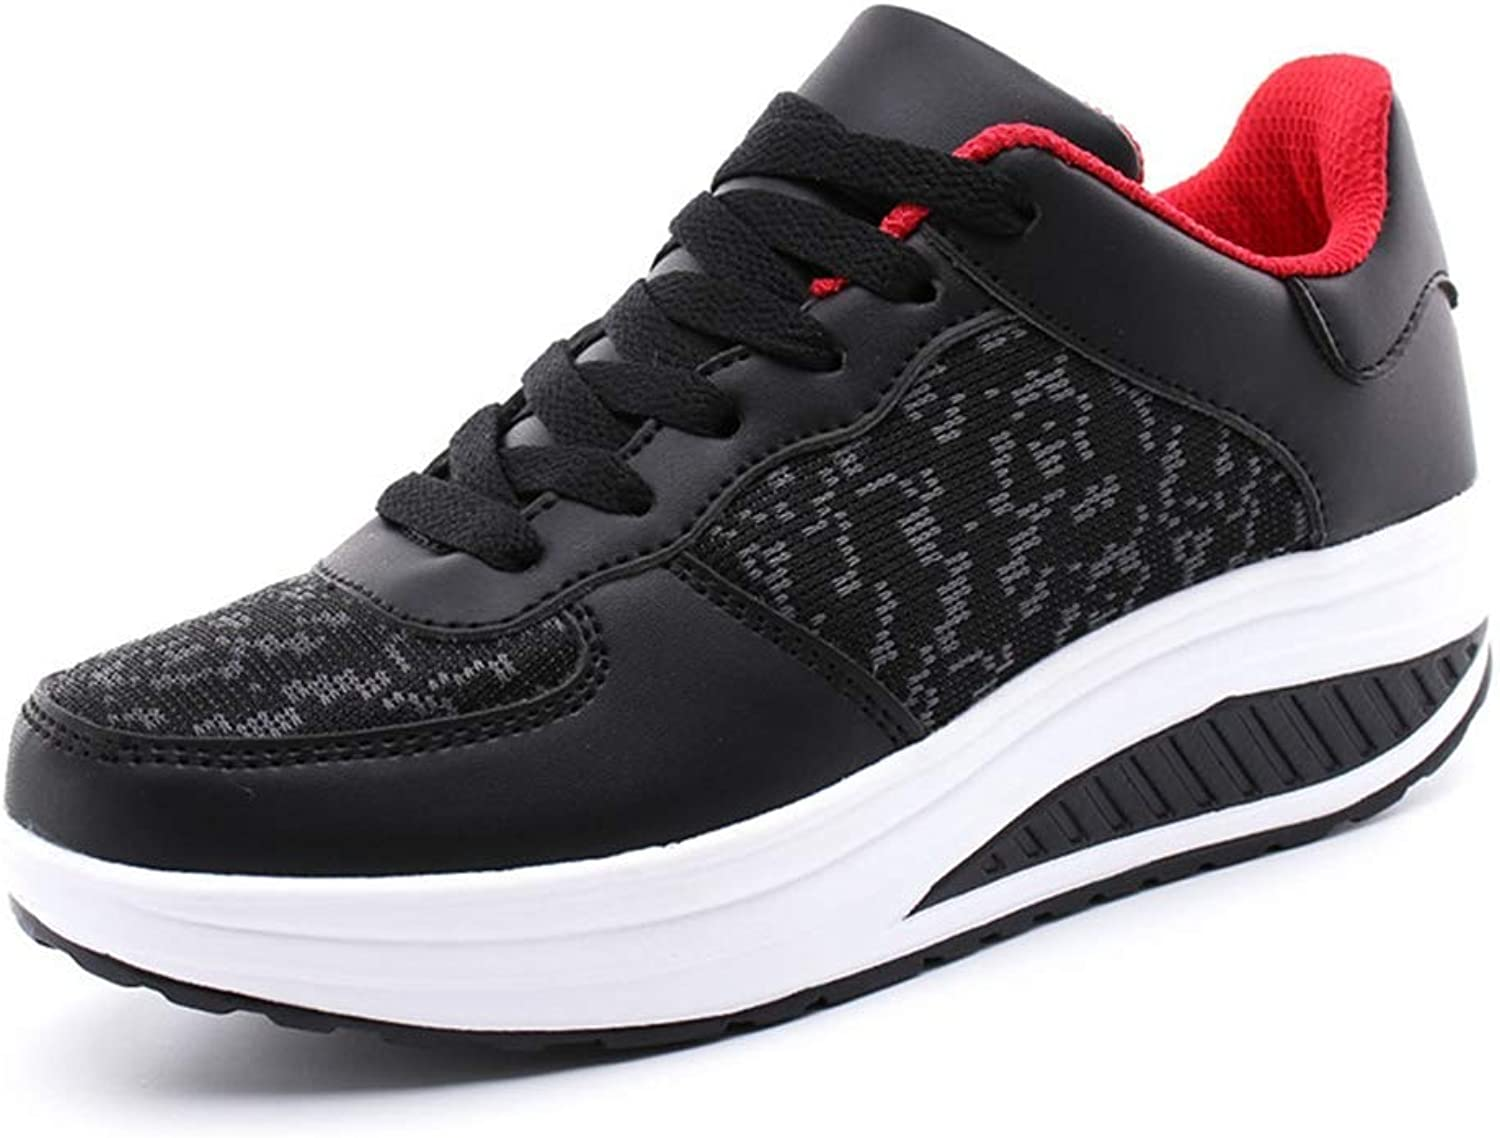 Wallhewb Women's Summer Wedges Lace Up Creepers Casual shoes Platform Trainers Basket Sneakers Hot Pants to Wear with Dresses Rubber Sole Tennis shoes Comfortable Dress Black 5 M US Casual shoes